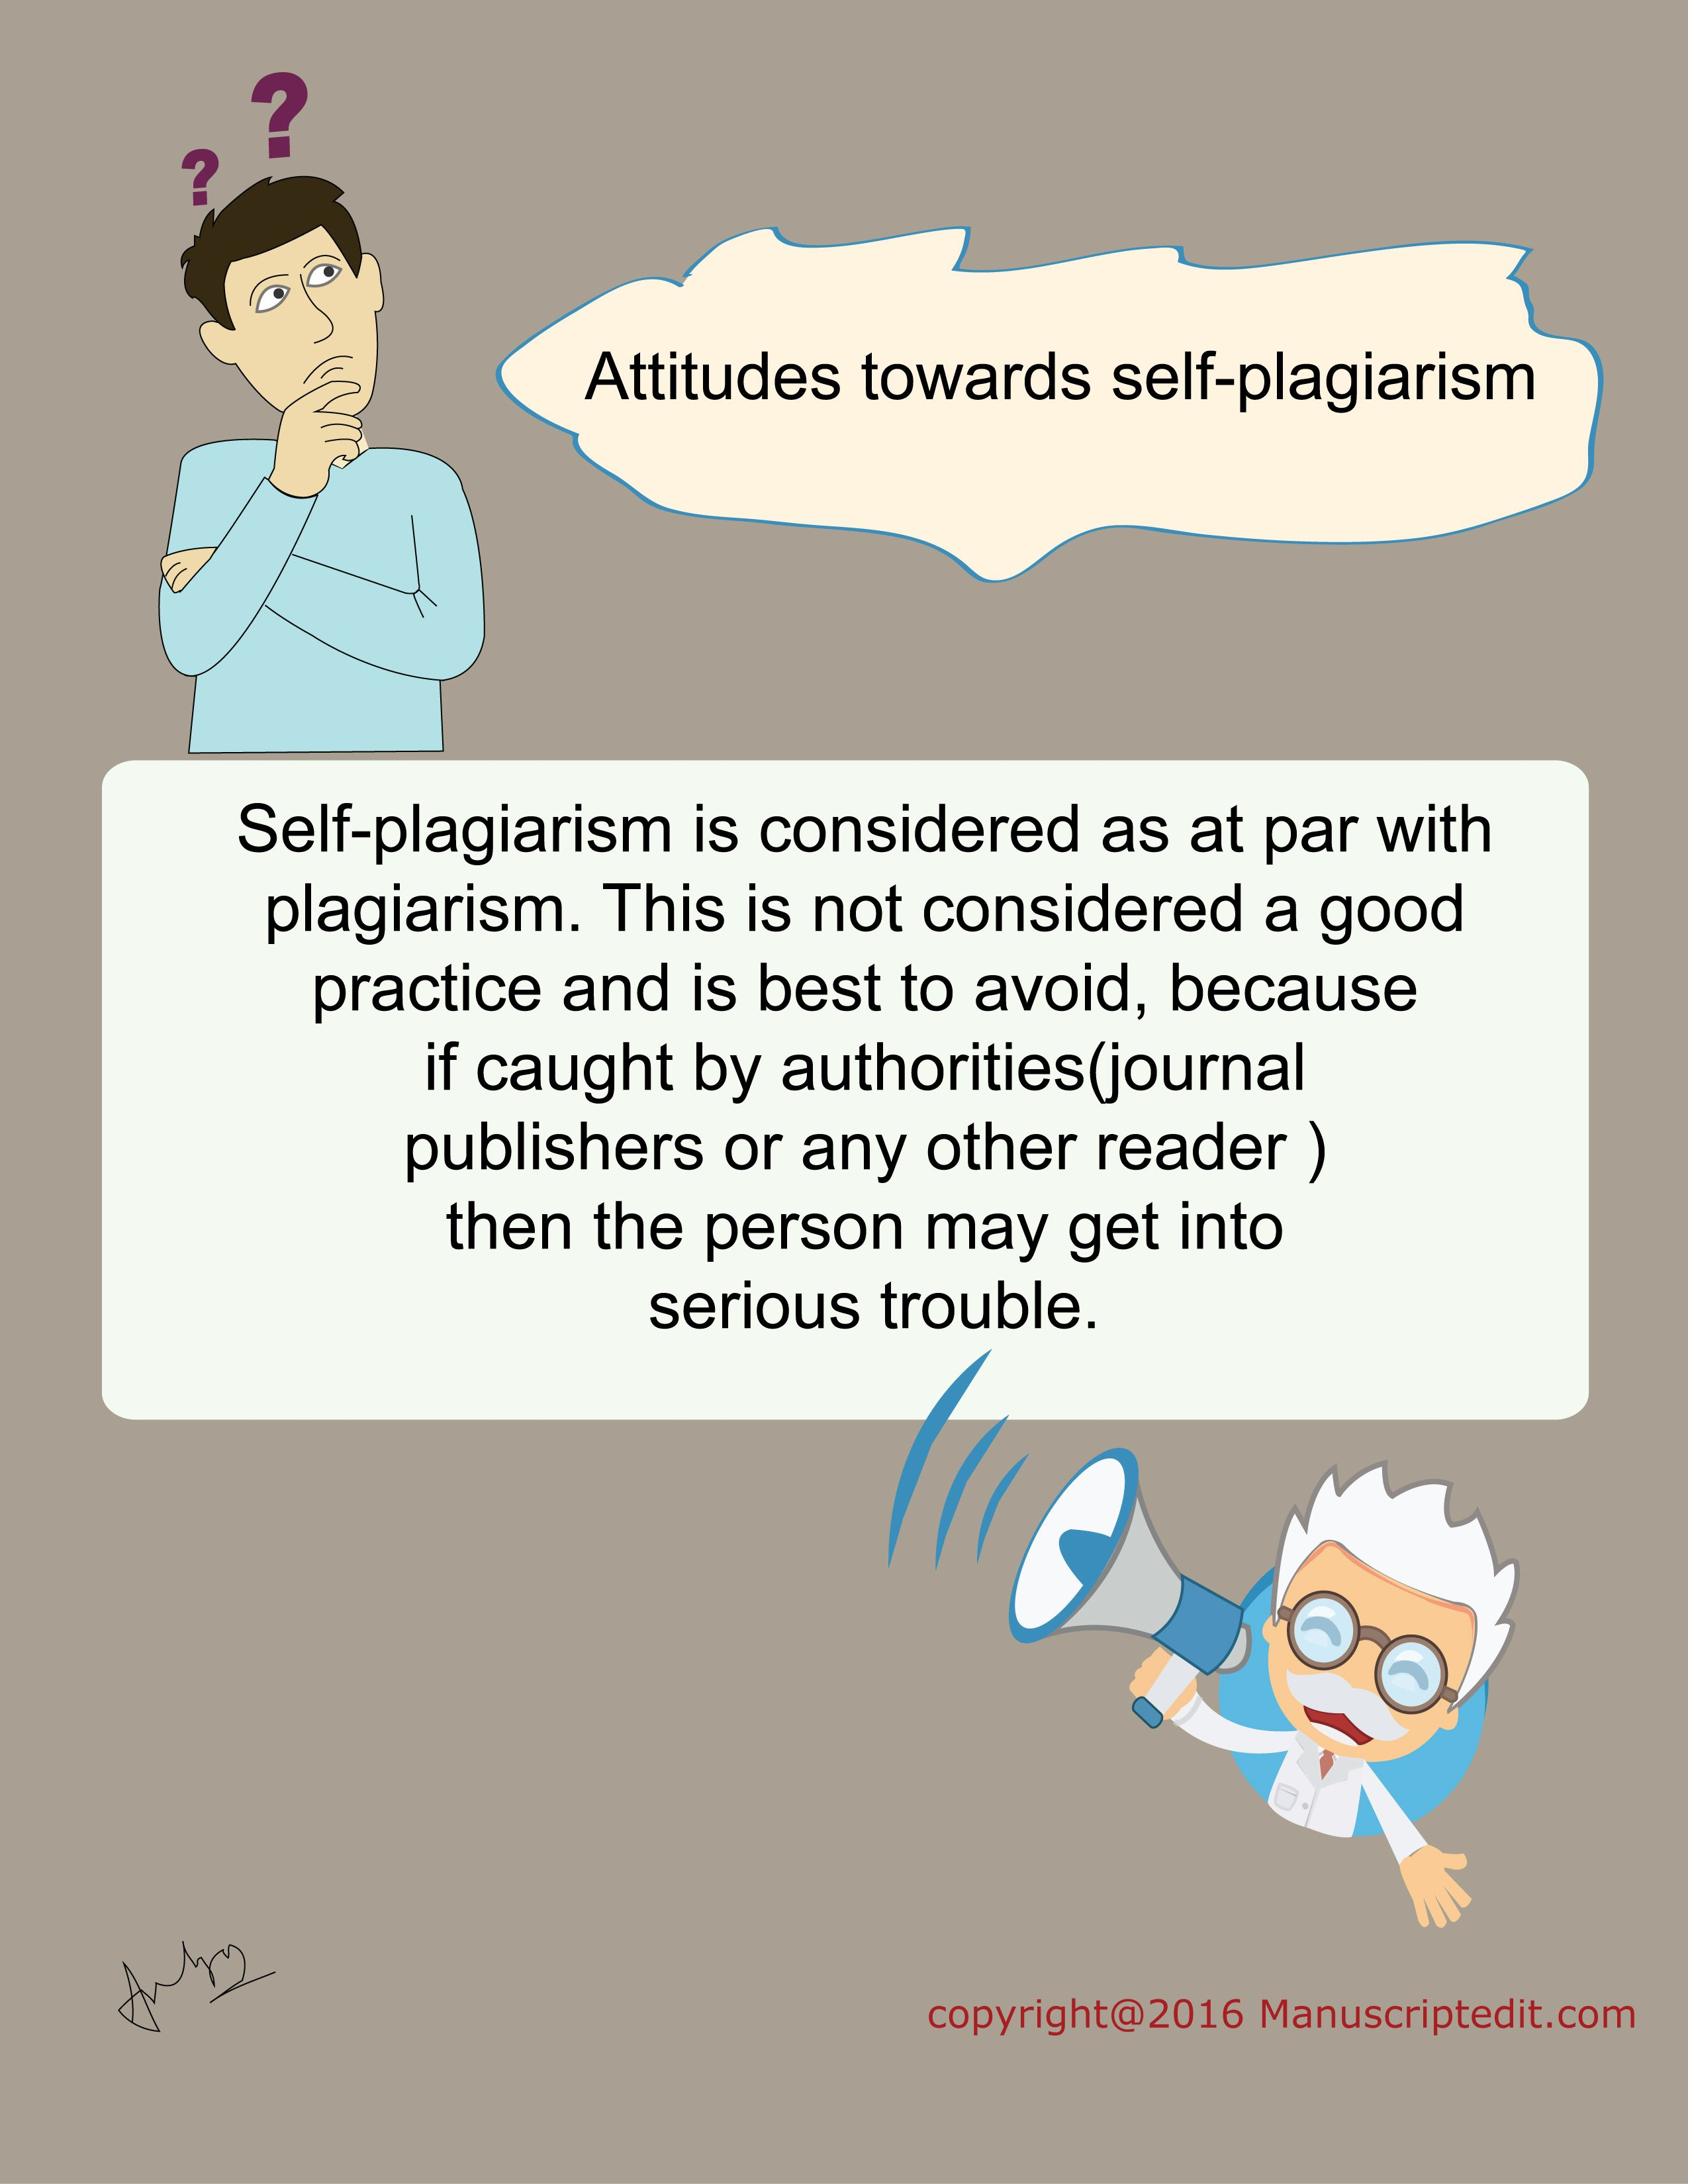 #Manuscriptedit @ Attitudes towards self-plagiarism :  Self-plagiarism is considered as at par with #plagiarism. This is not considered a good practice and is best to avoid, because if caught by #authorities(#journal publishers or any other reader ) then the person may get into serious trouble.  #Manuscriptedit #blogpost : http://bit.ly/29cV8Fg